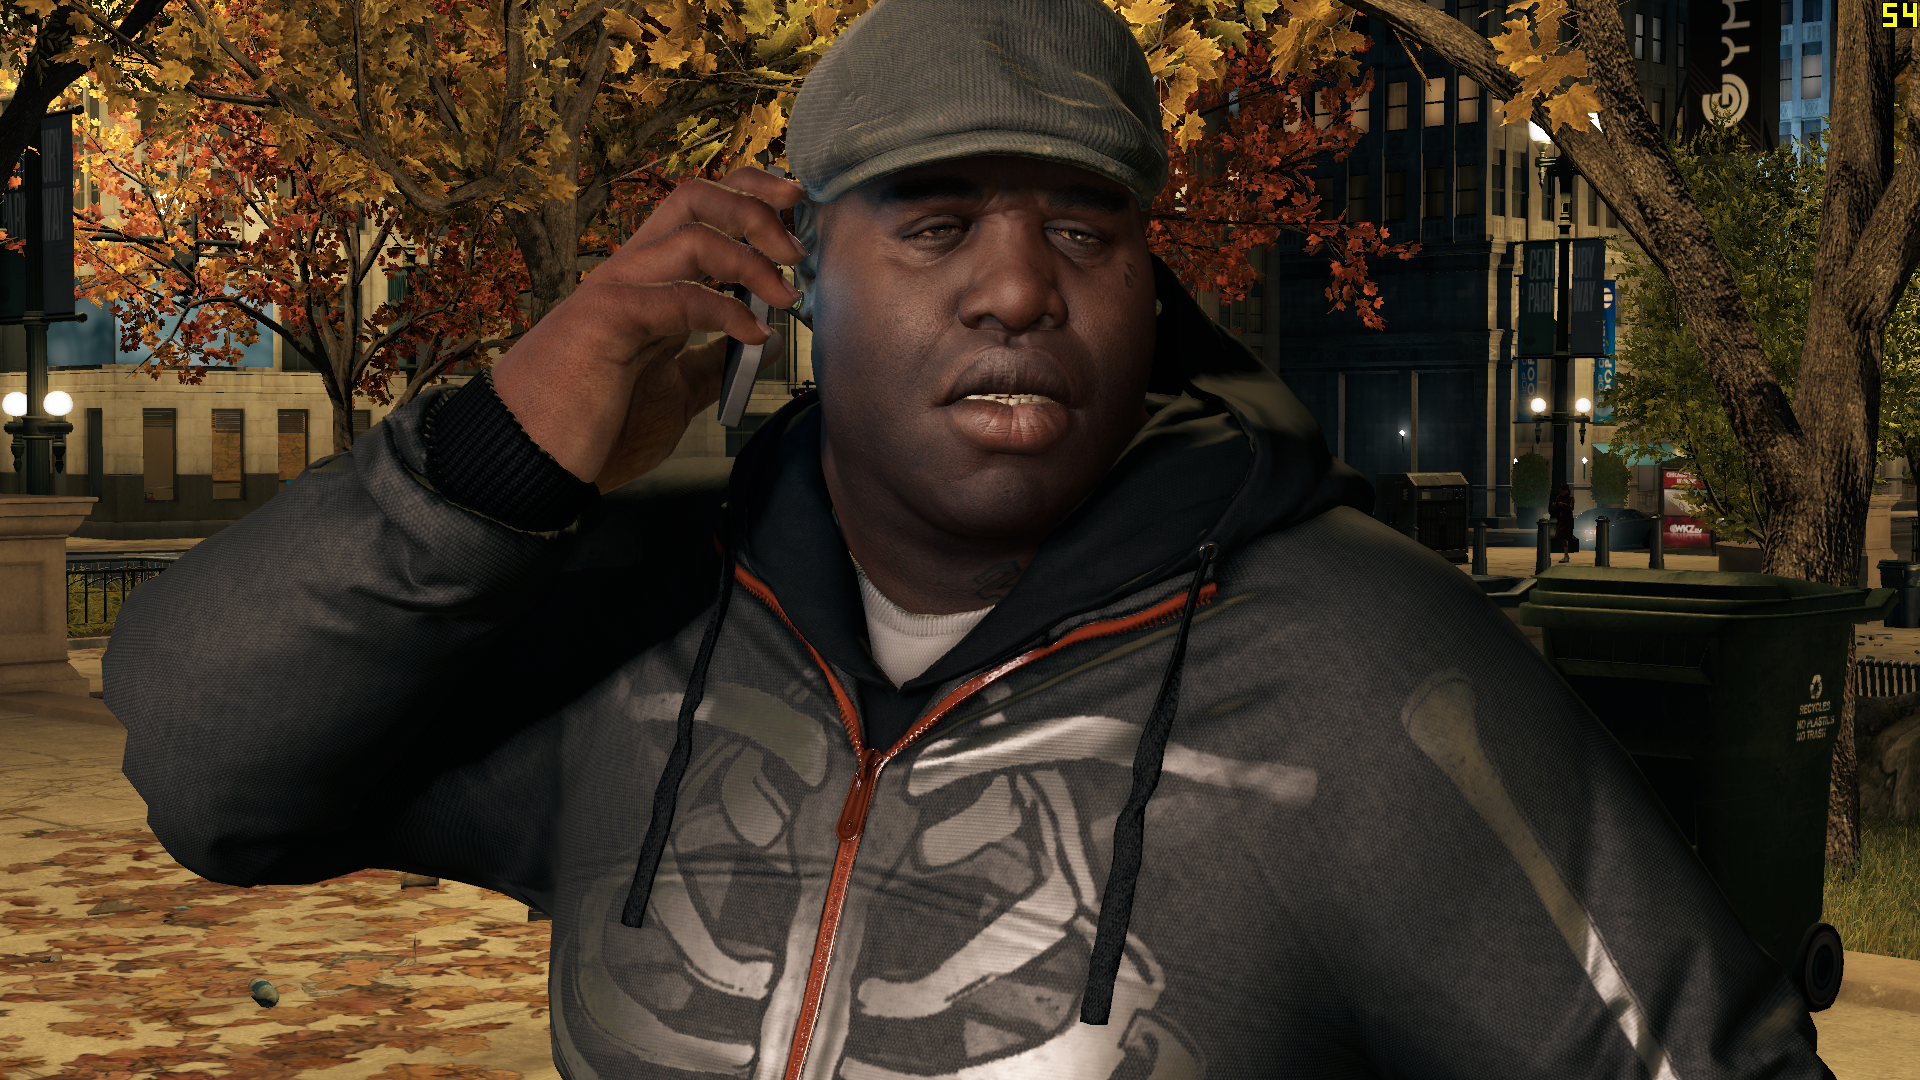 watch_dogs-spoilers-00ulud.png